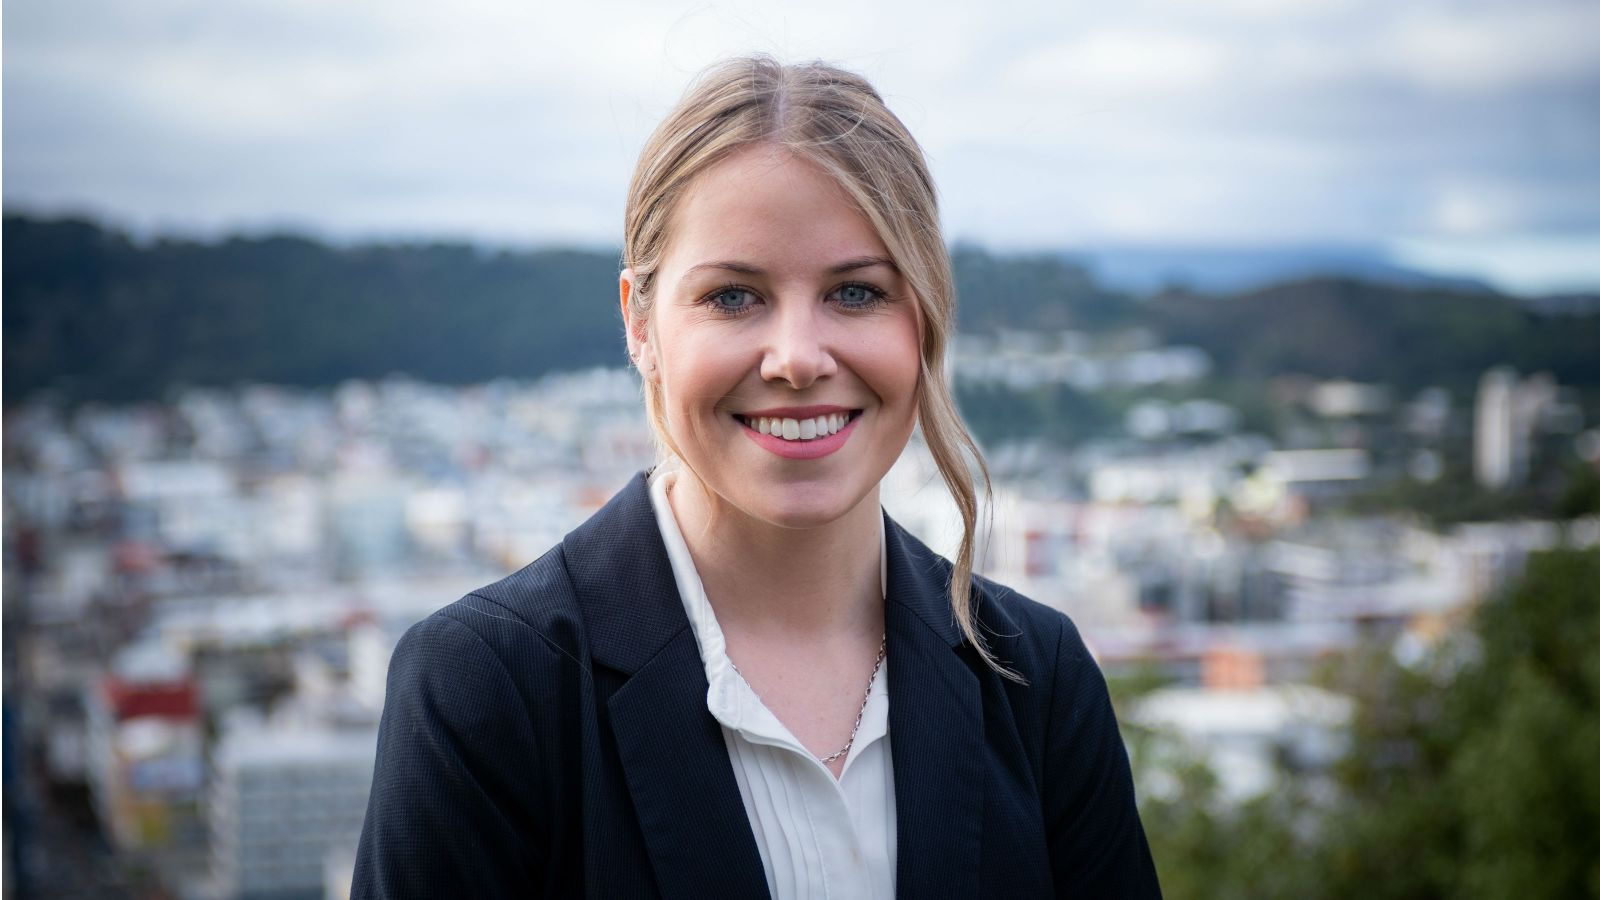 Laurette Siemonek stands outside with Wellington city behind her